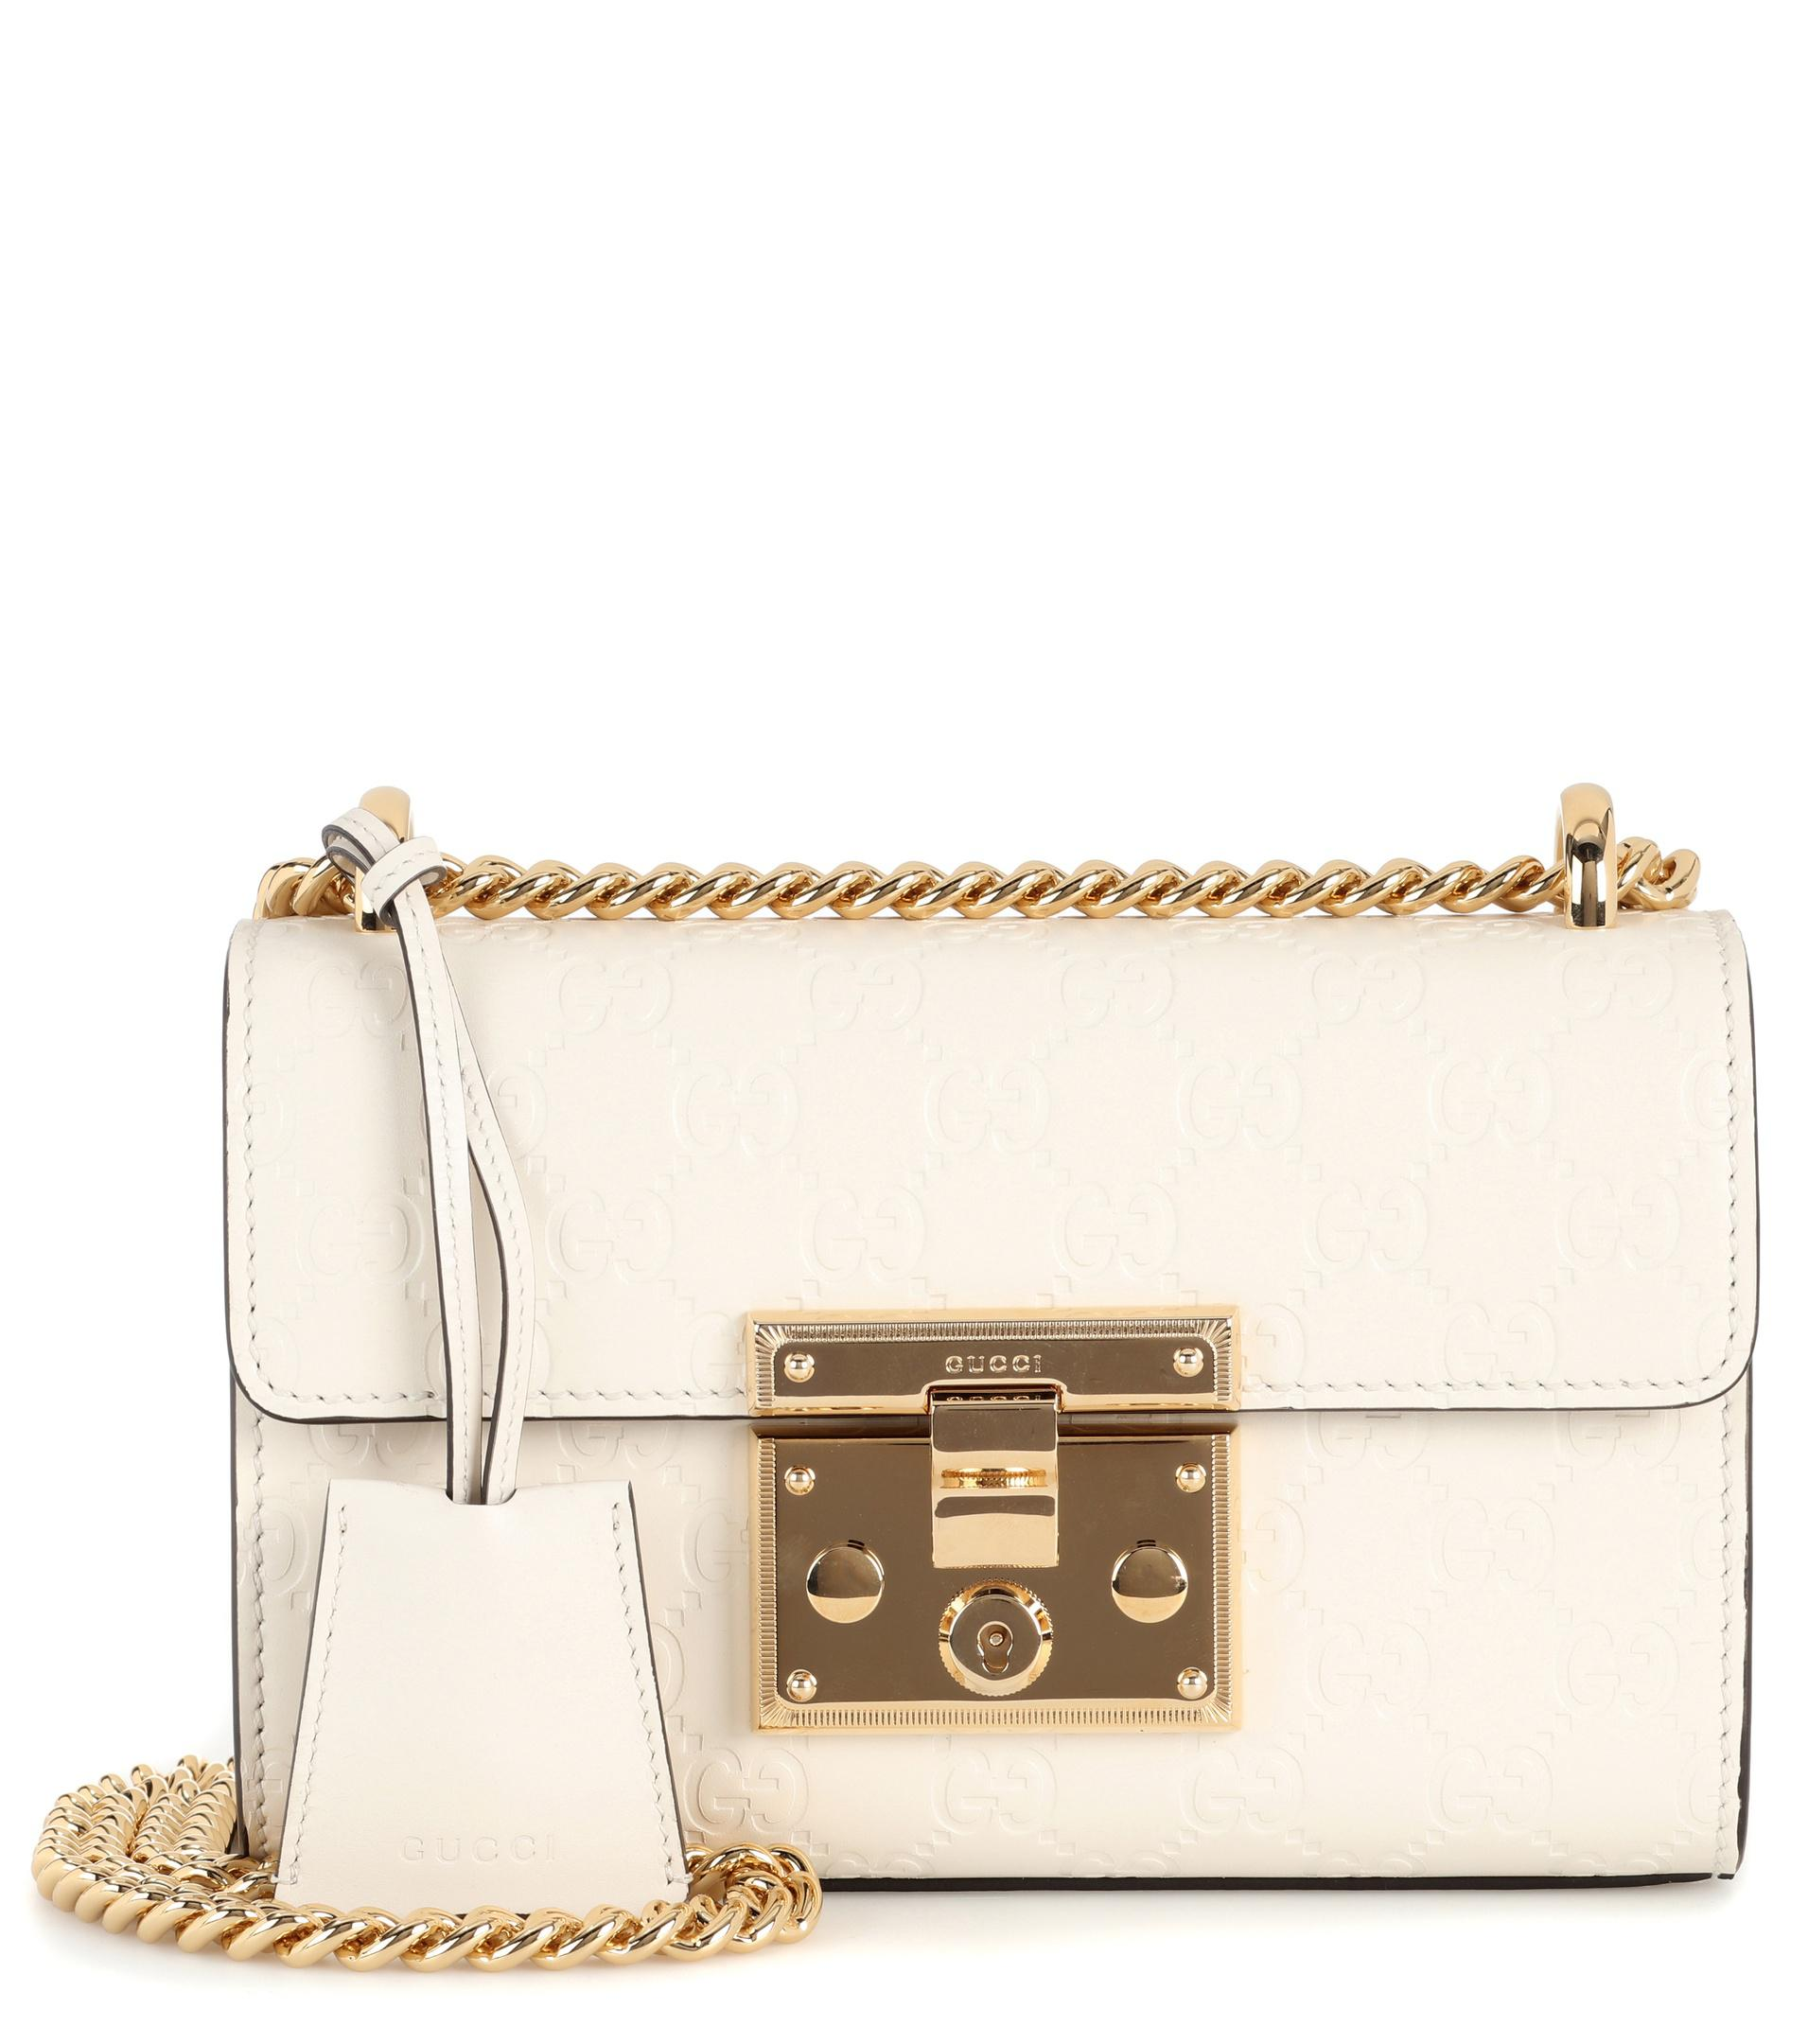 Gucci Padlock Mini Snakeskin Shoulder Bag, White/Black